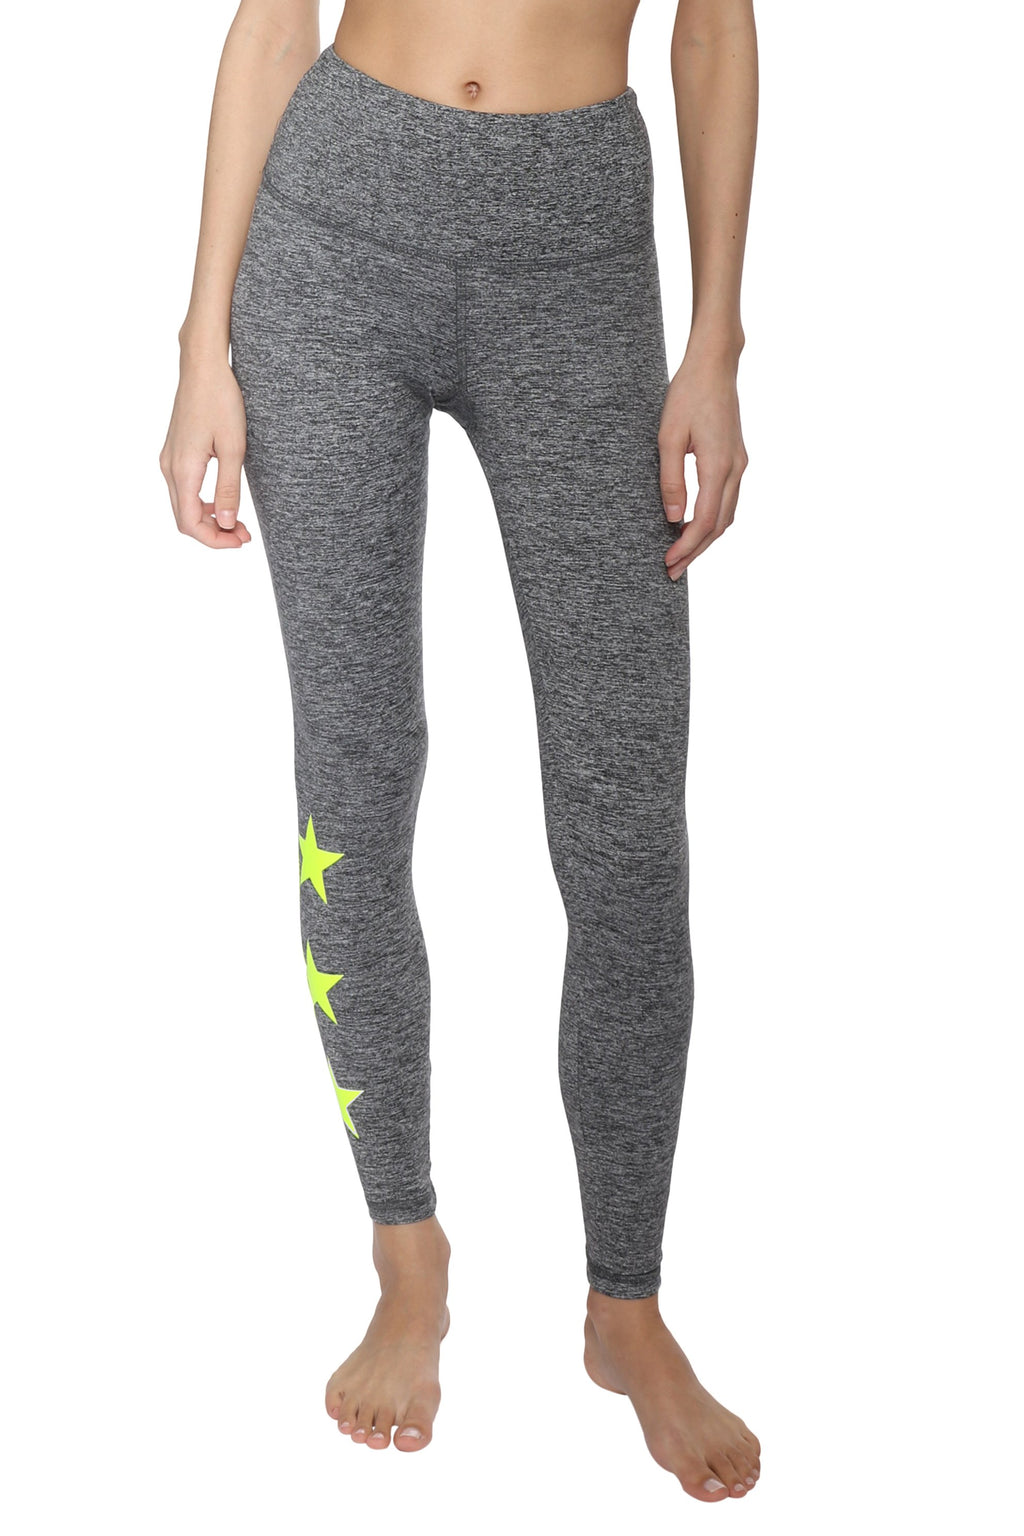 Strut This Star Ankle Leggings Moss/Neon Yellow